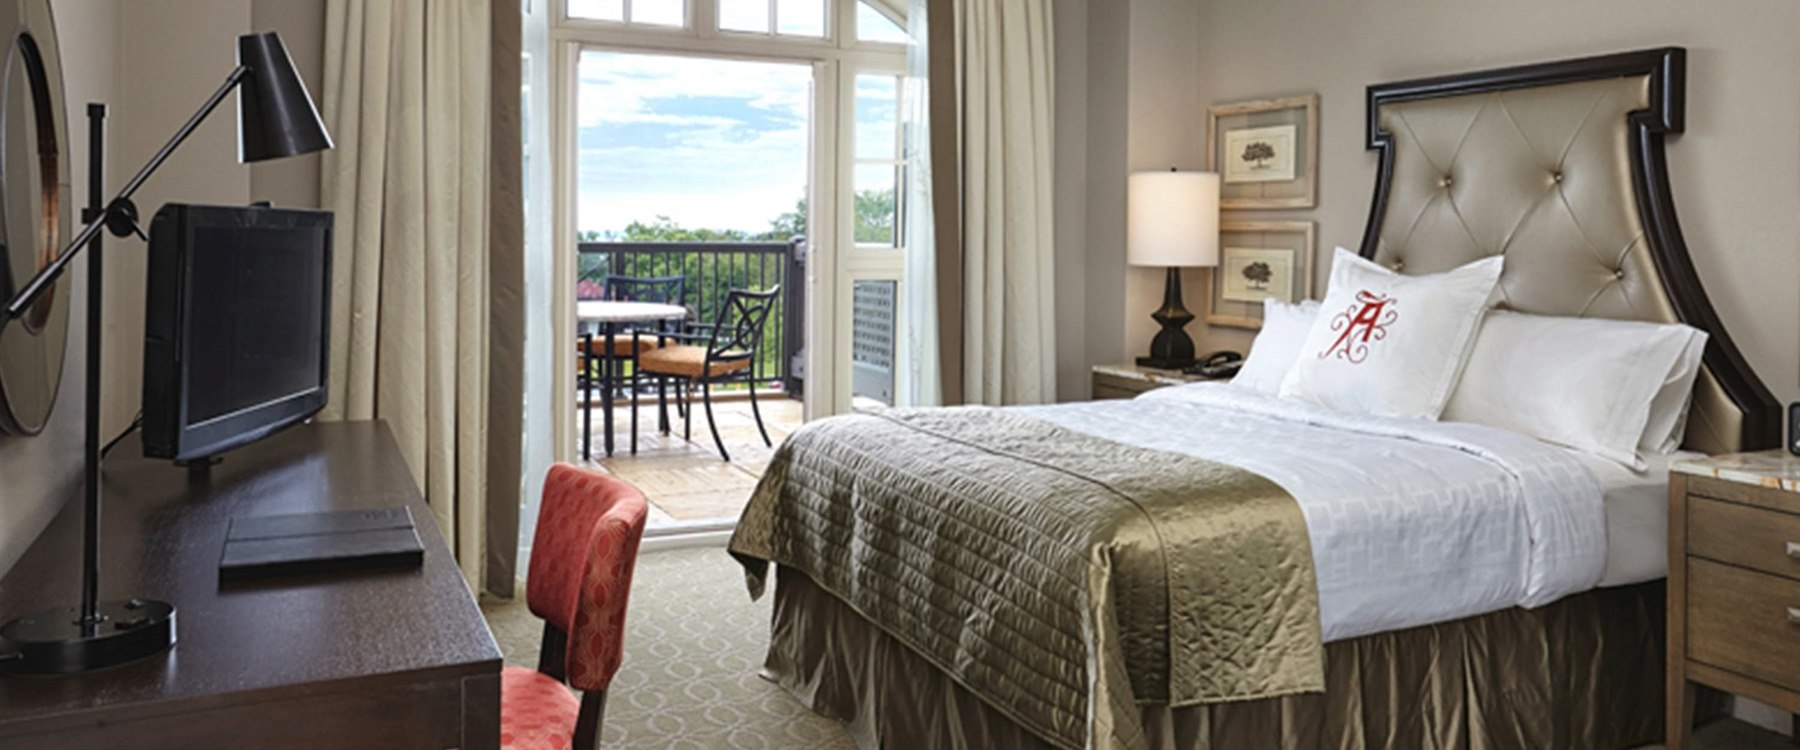 Guest room with patio at The Algonquin Resort, St. Andrews